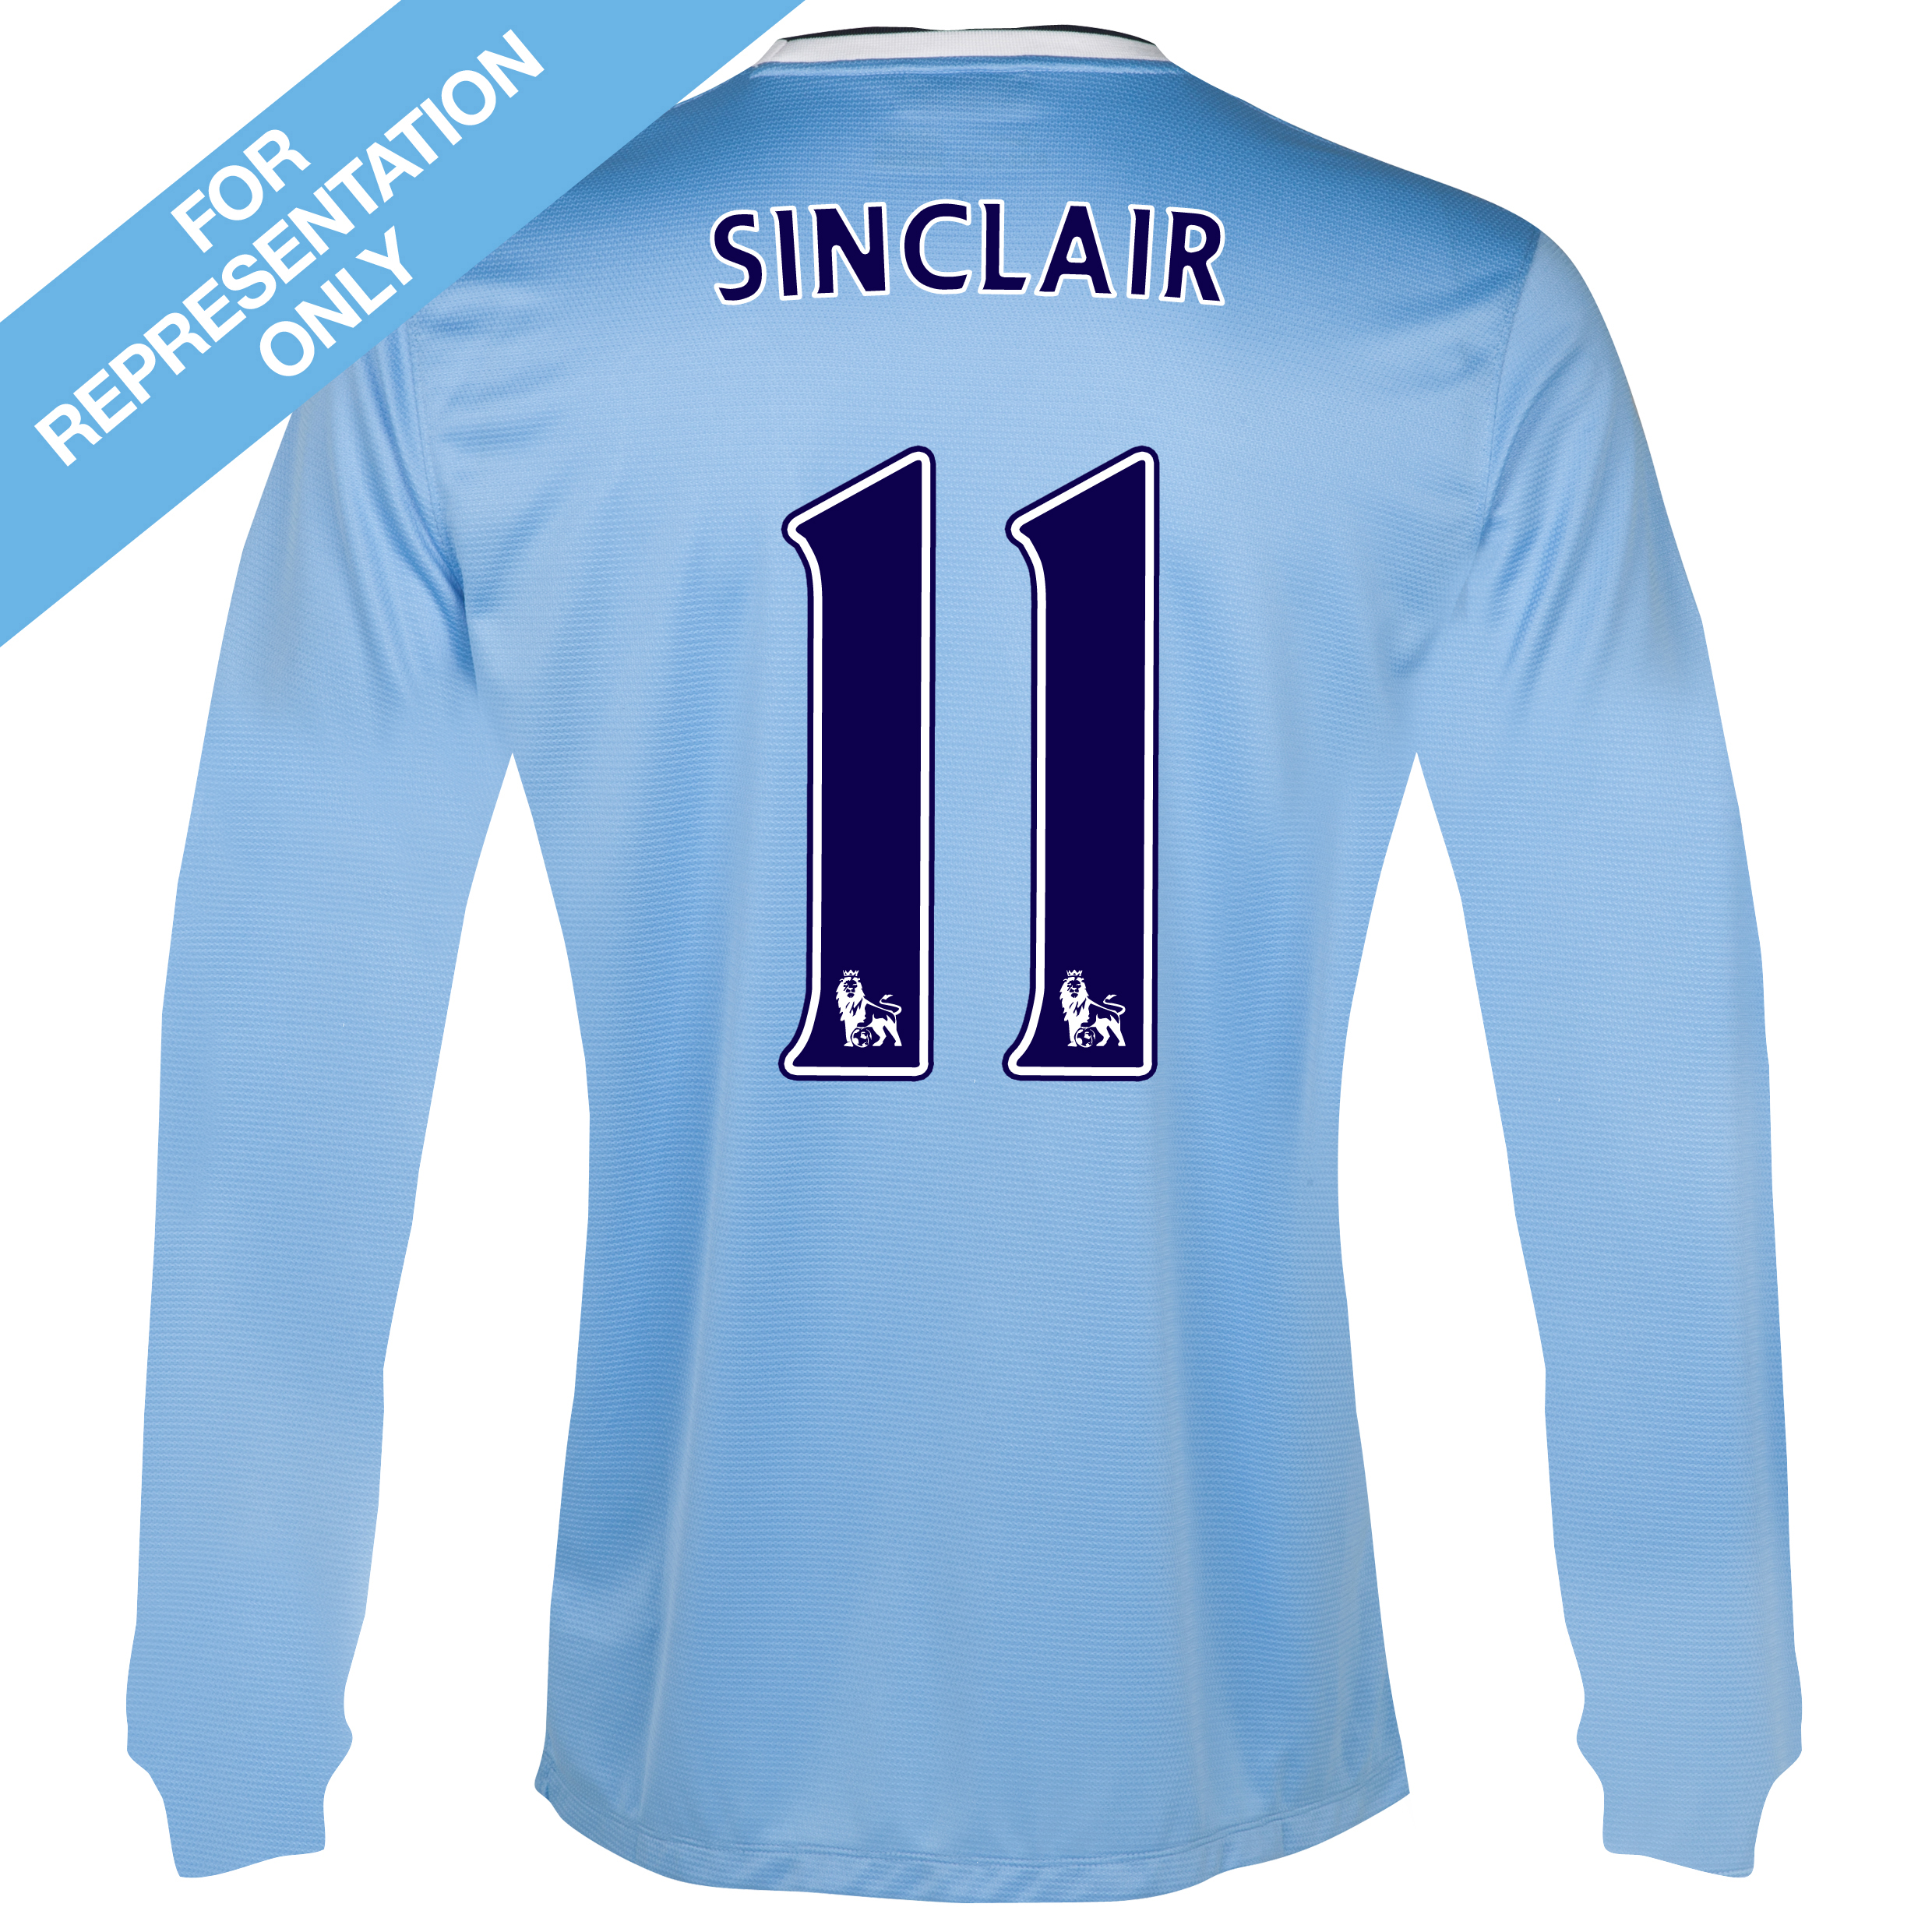 Manchester City Home Shirt 2013/14 - Long Sleeved - Junior with Sinclair 11 printing